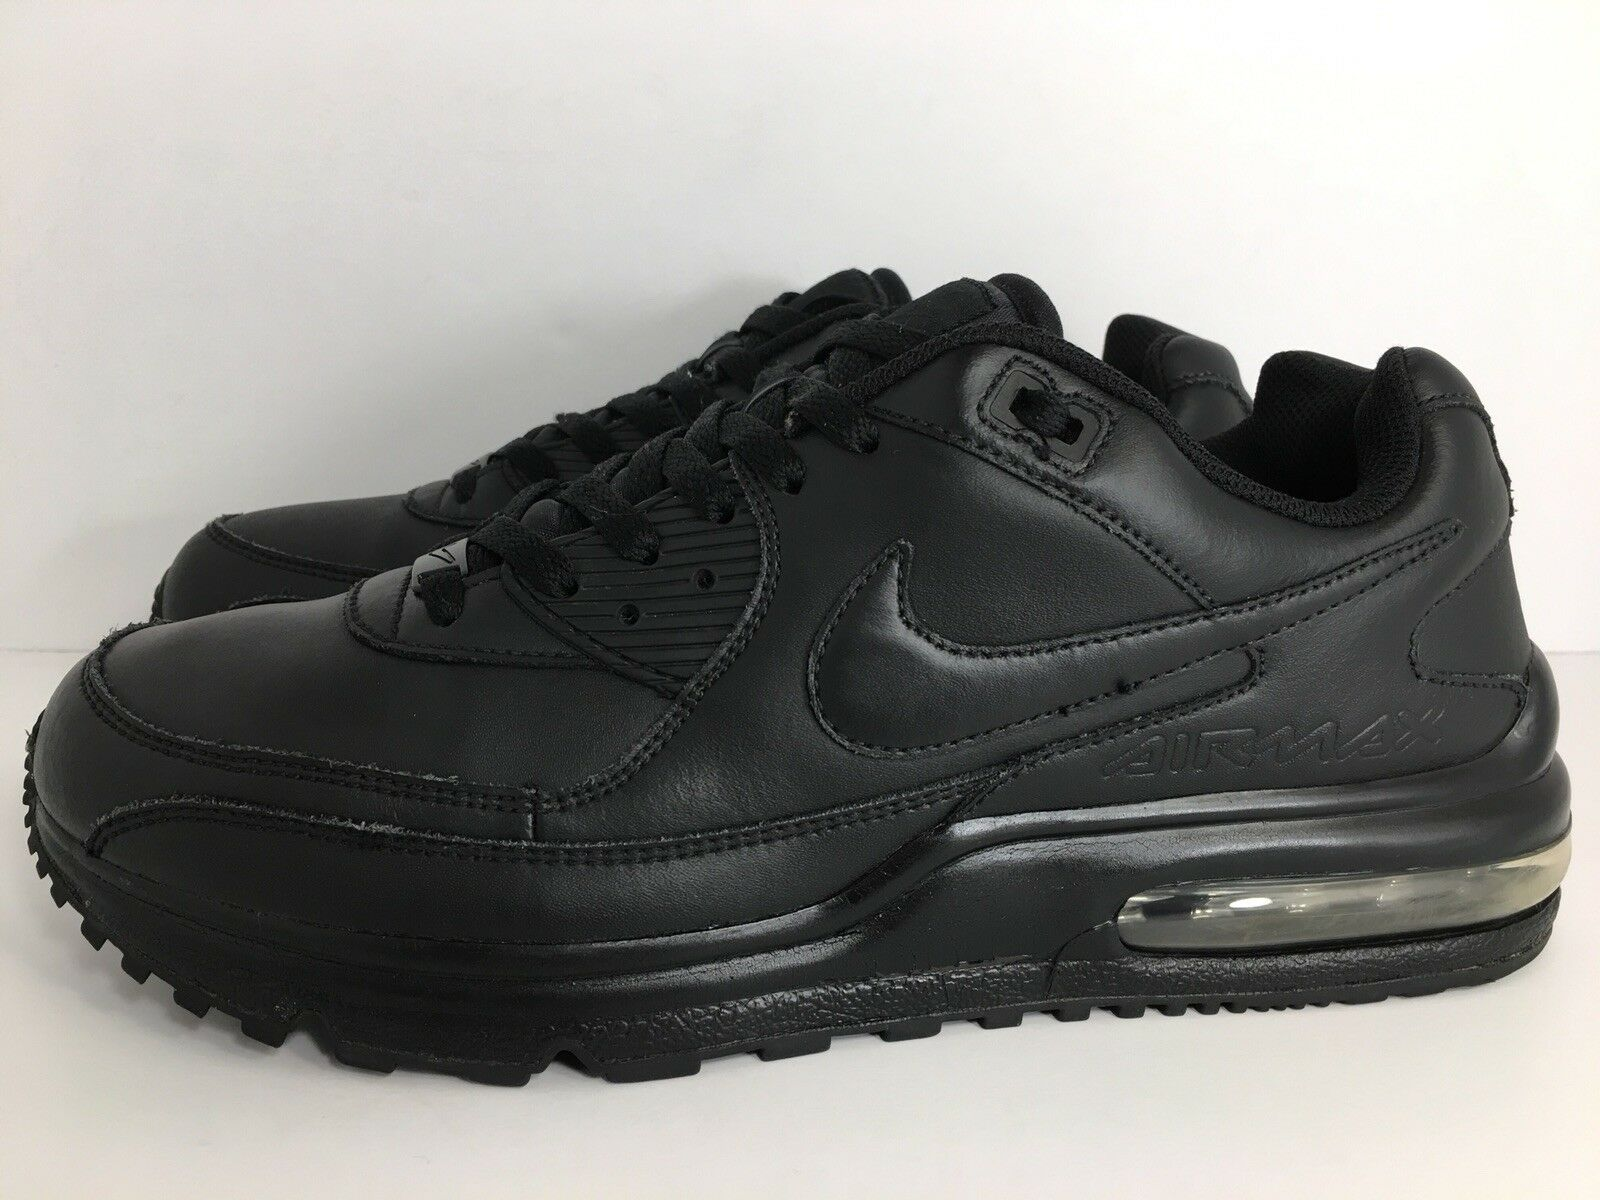 Nike Air Max Wright 317551-002 Noir Hommes Taille 10.5